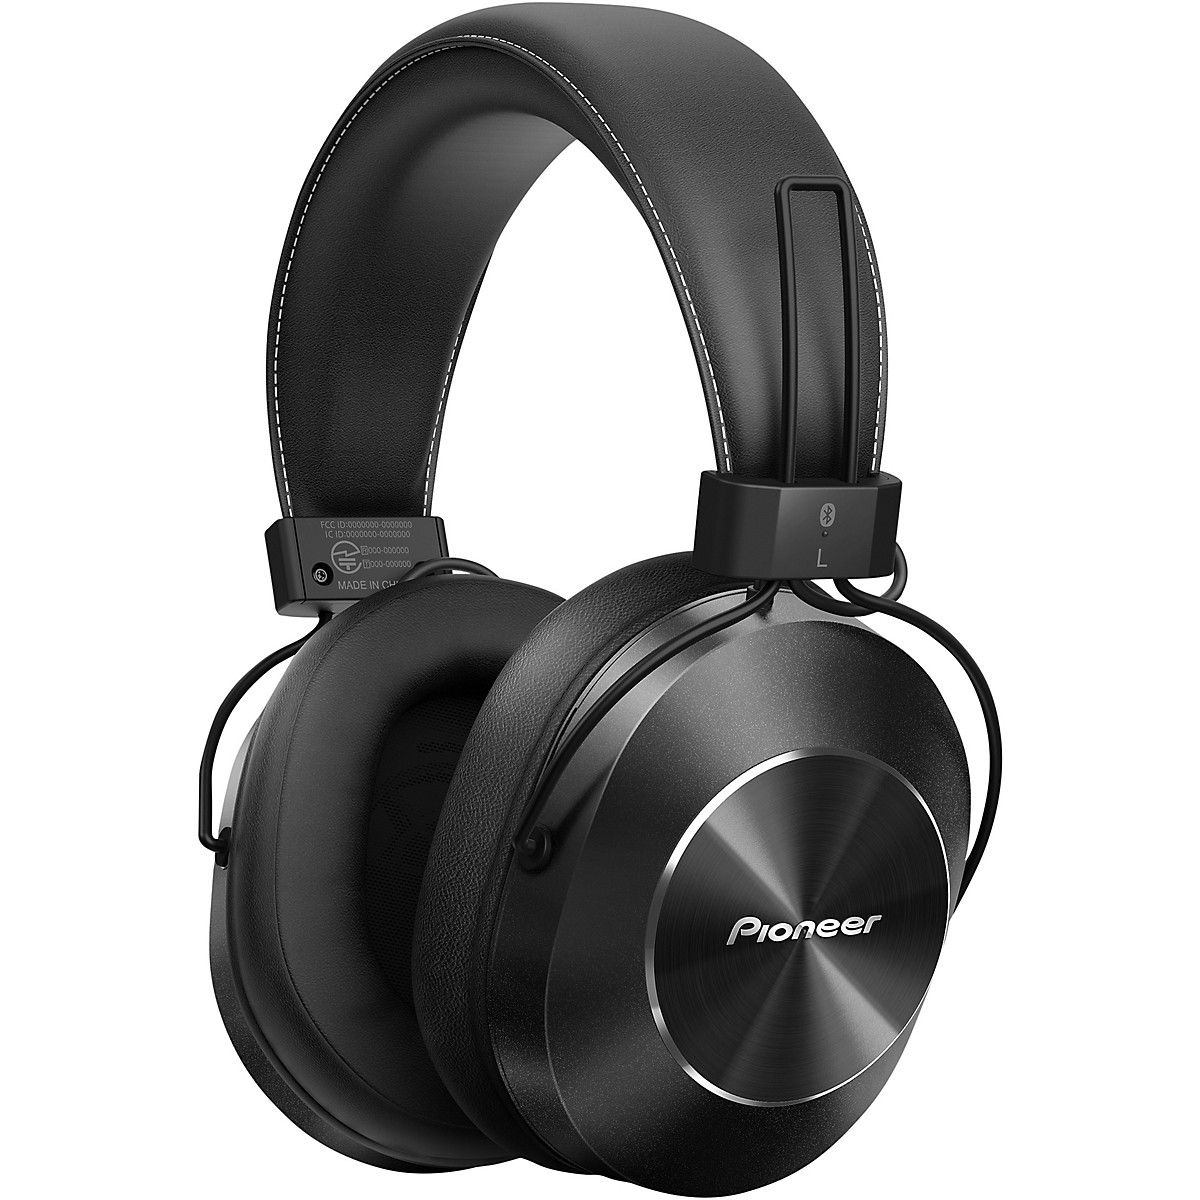 Pioneer SE-MS7BT-K Wireless/Wired Stereo Headphones